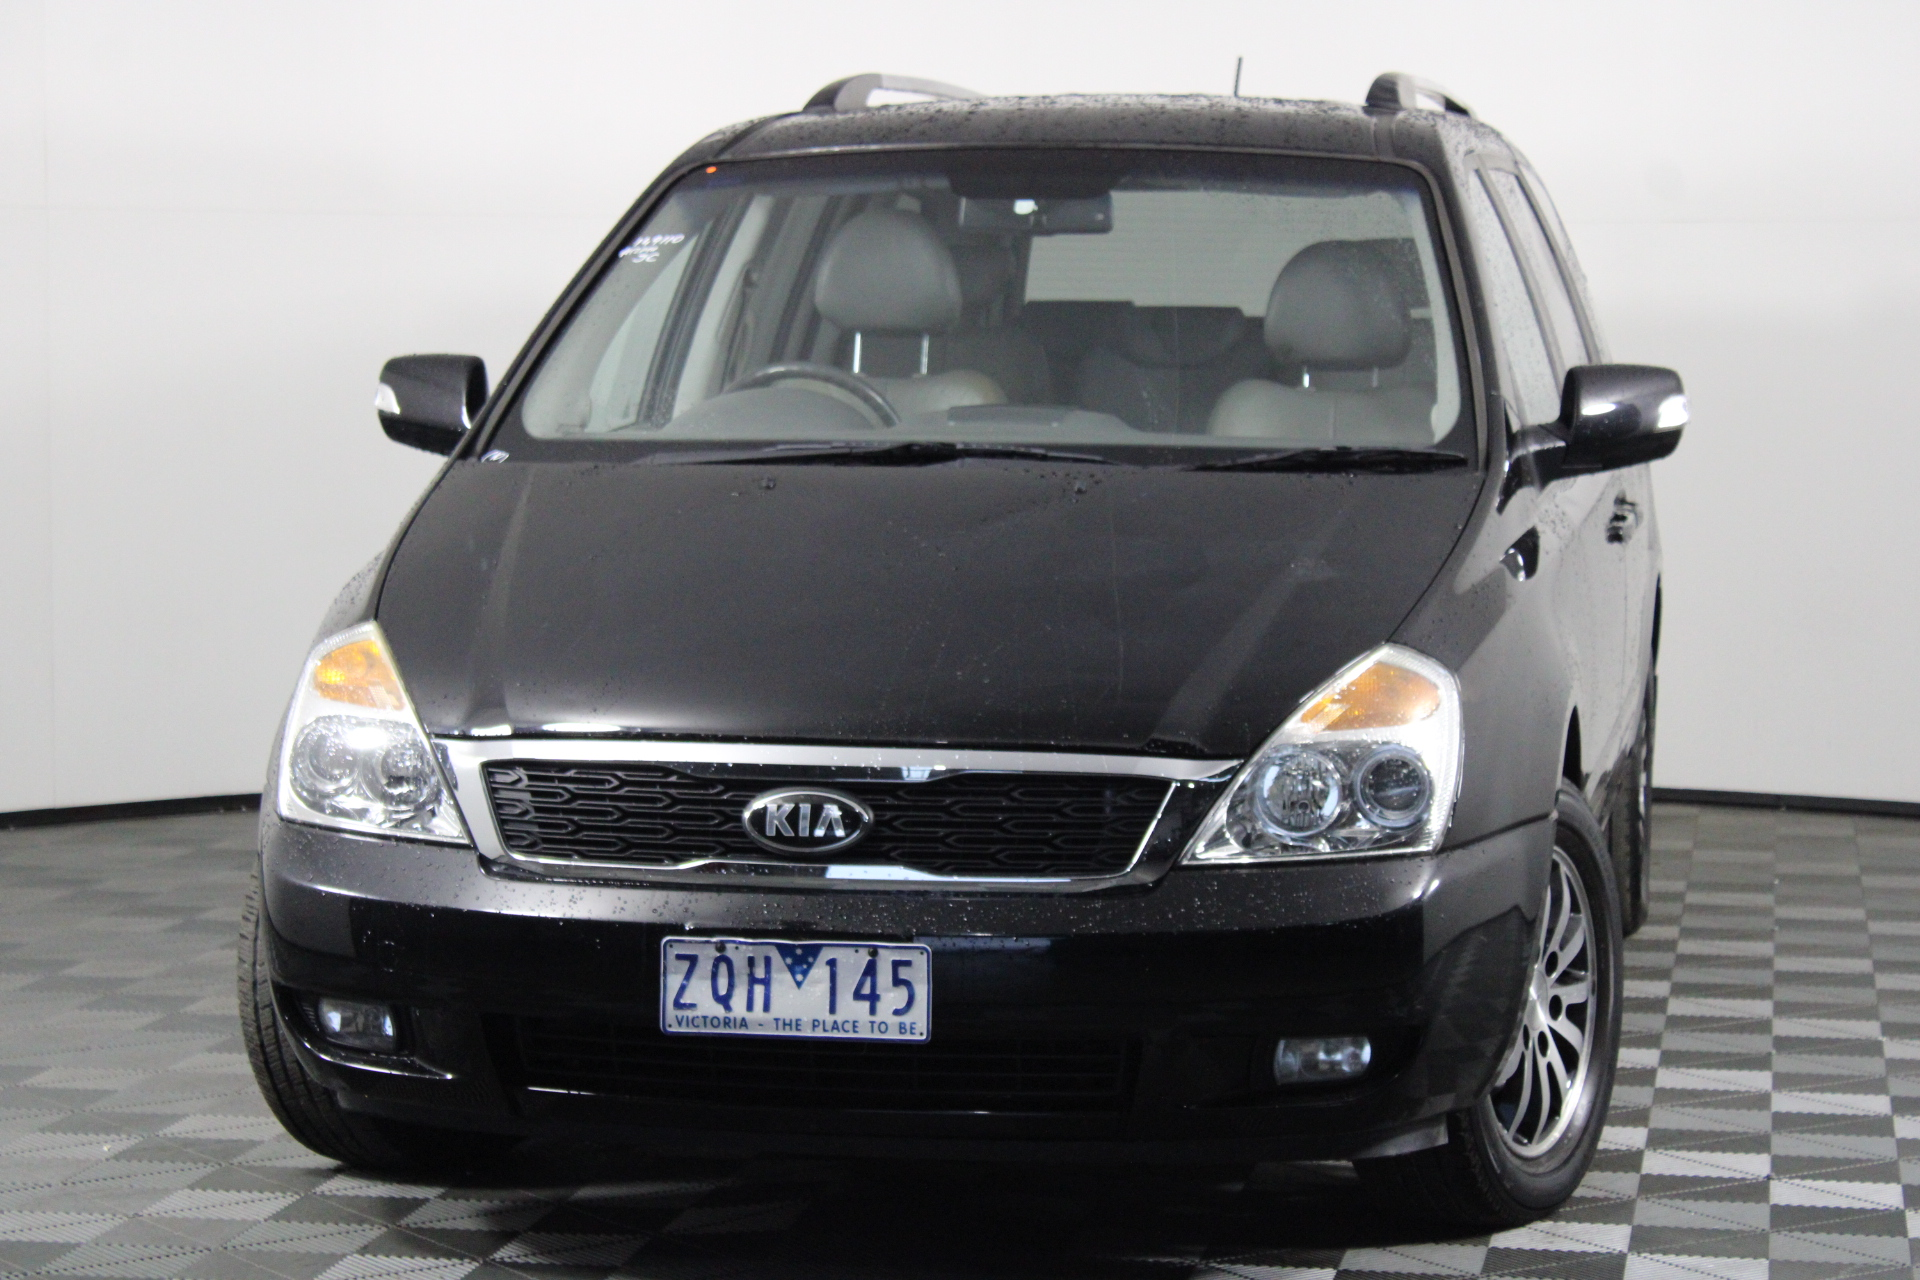 2013 Kia Carnival Automatic 8 Seats People Mover